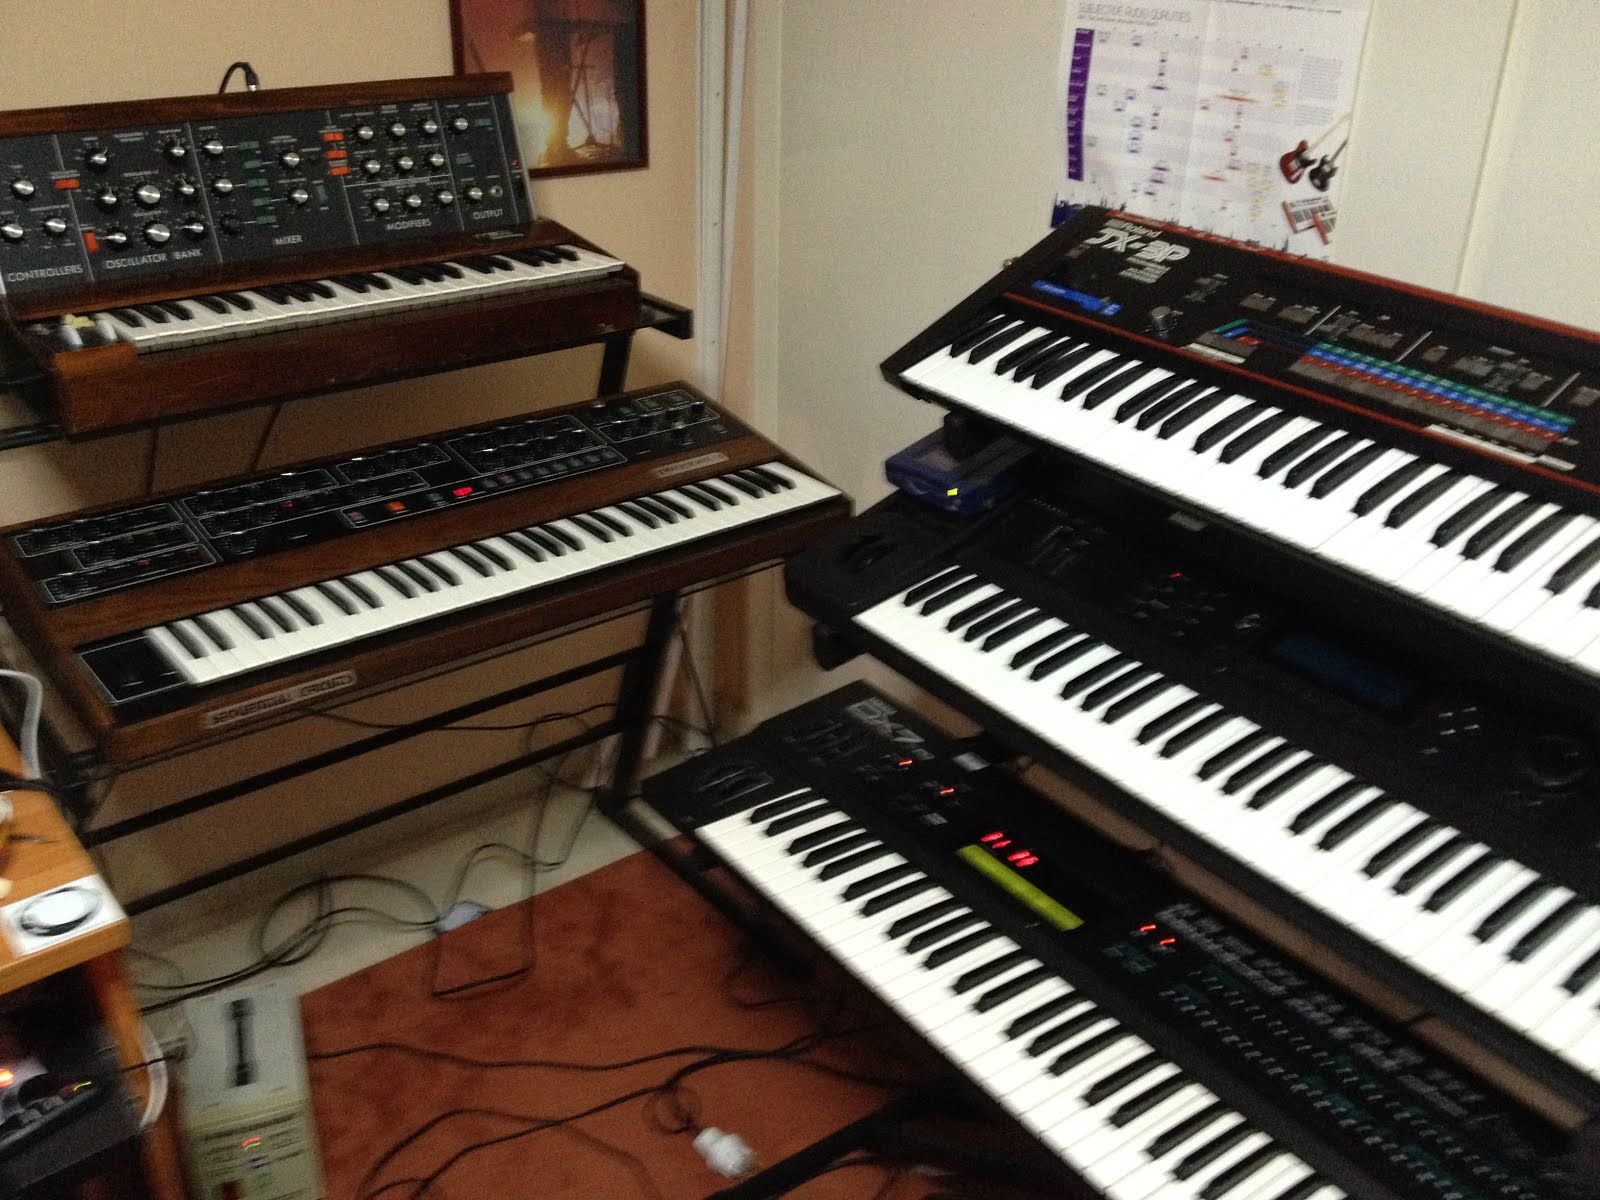 Synthesizers of Thaneco